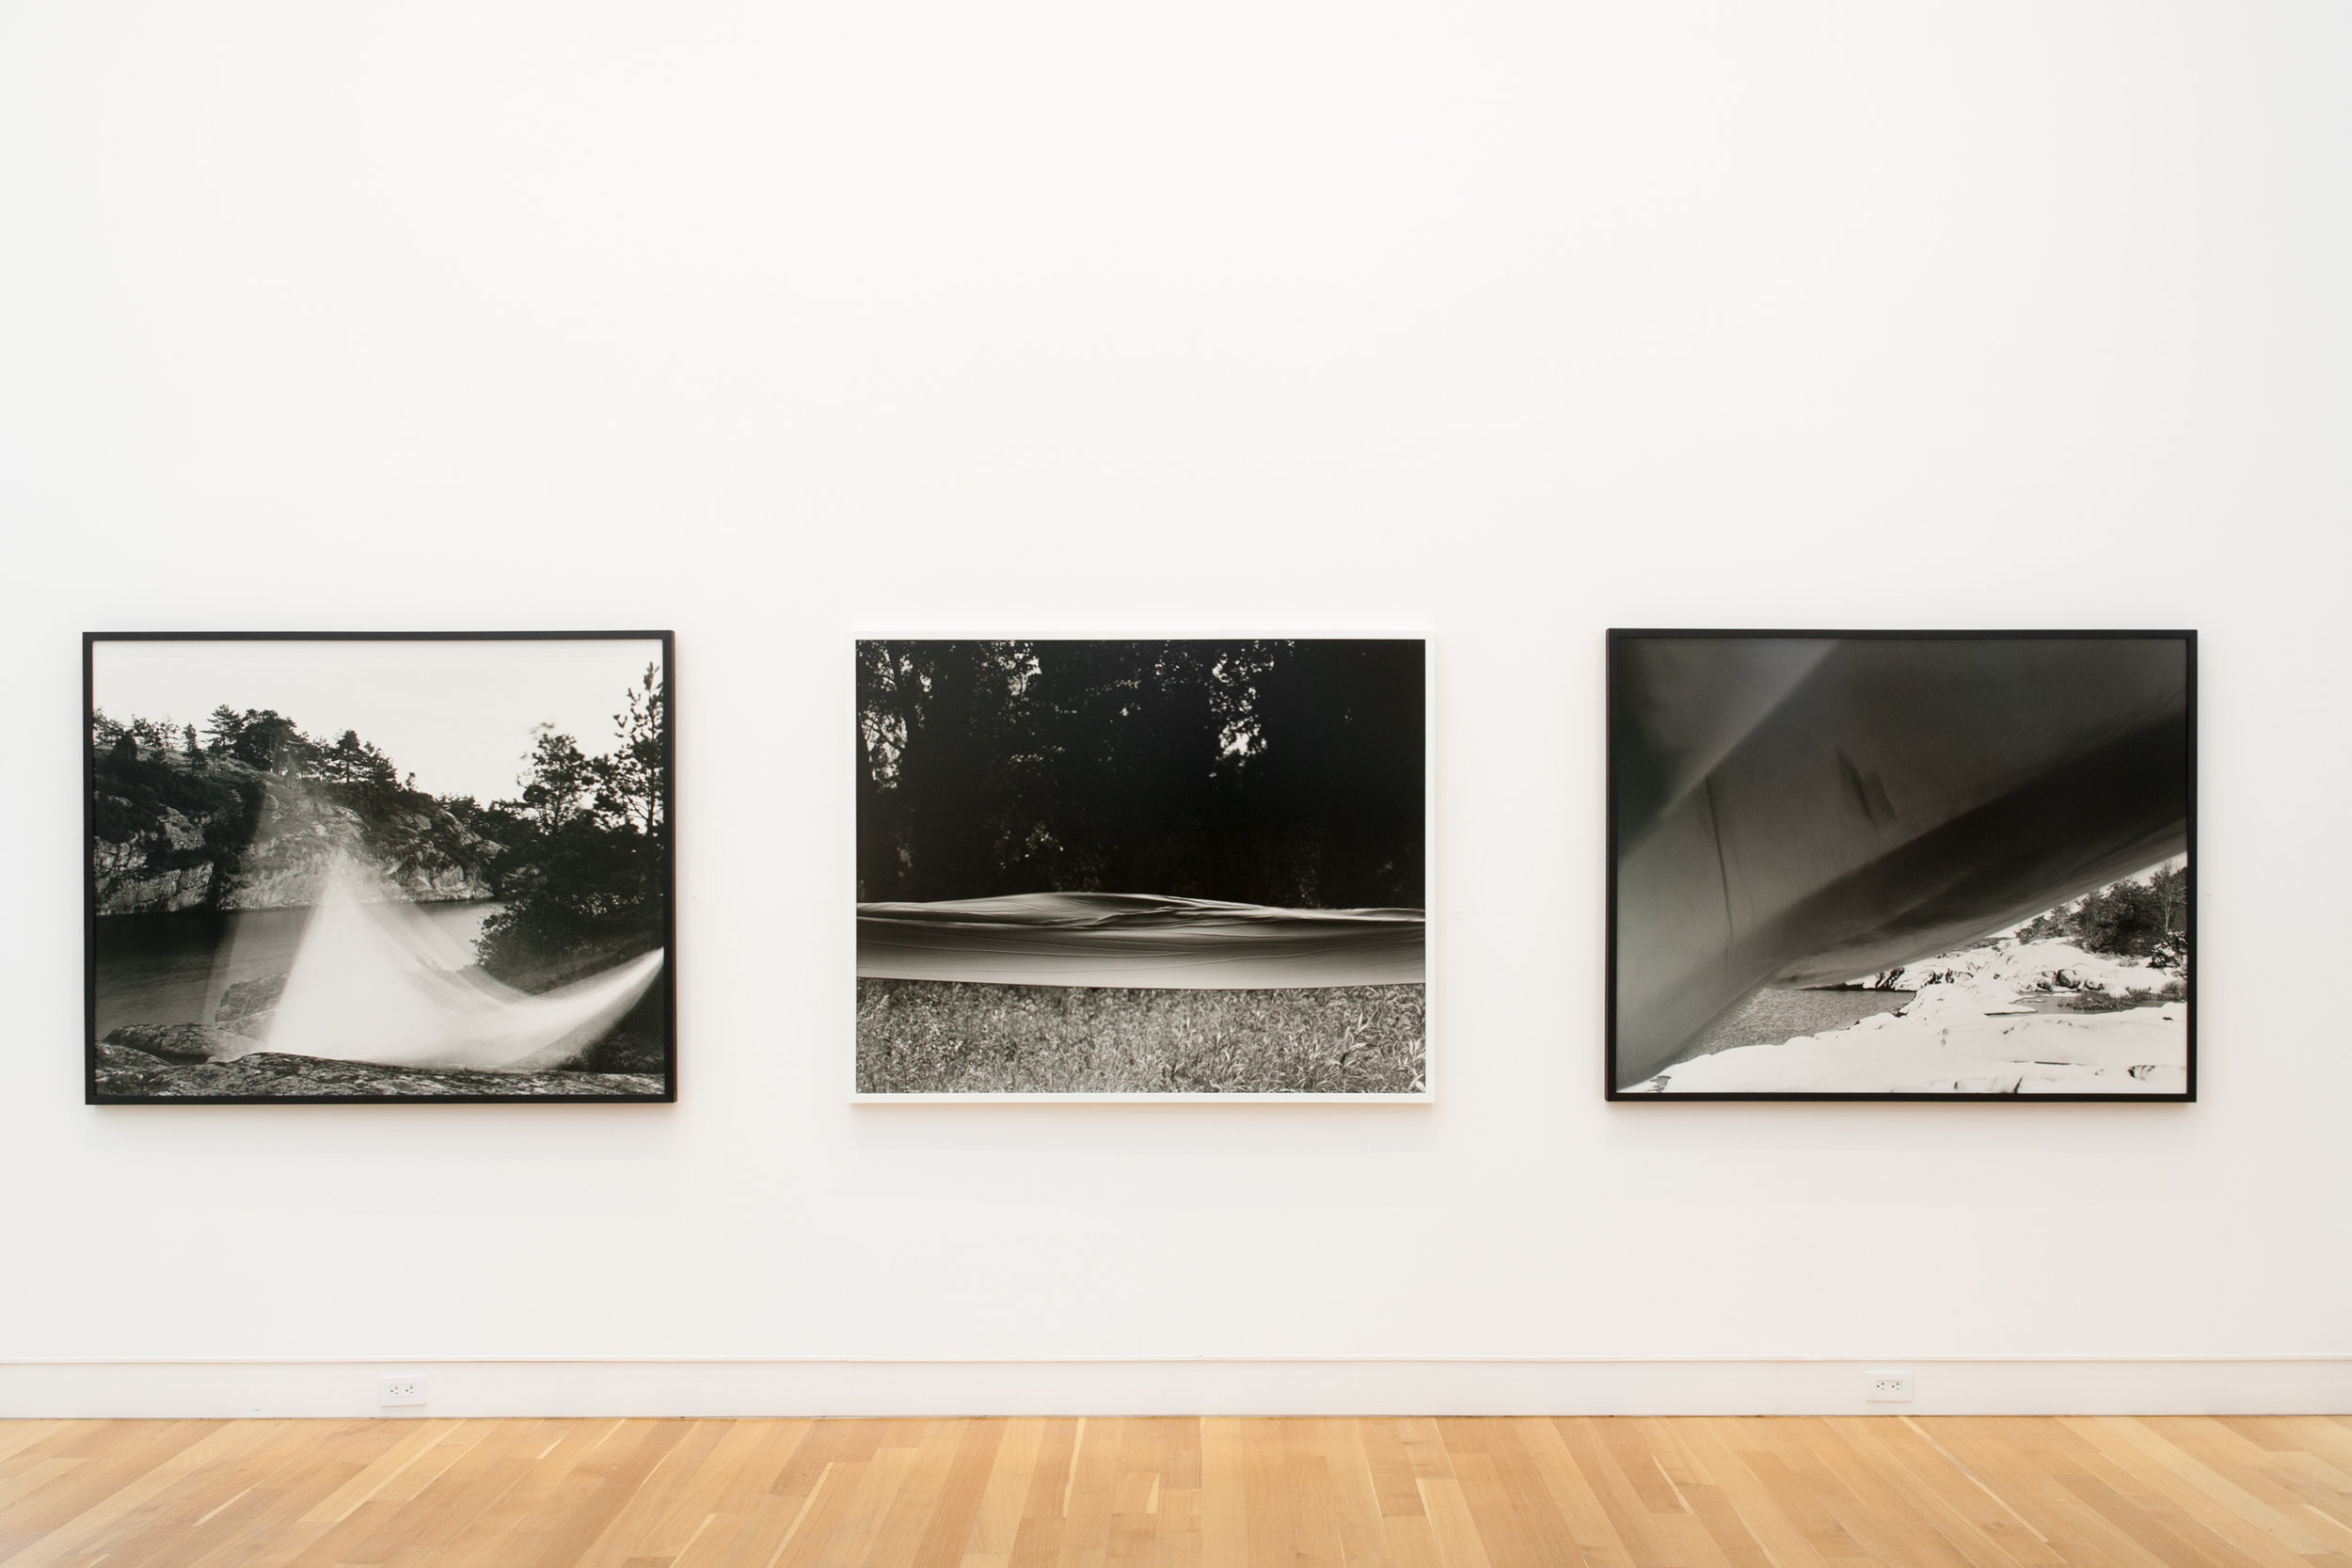 Installation view from  Dedee Shattuck Gallery, Westport, MA  All silver gelatin prints on fibre paper